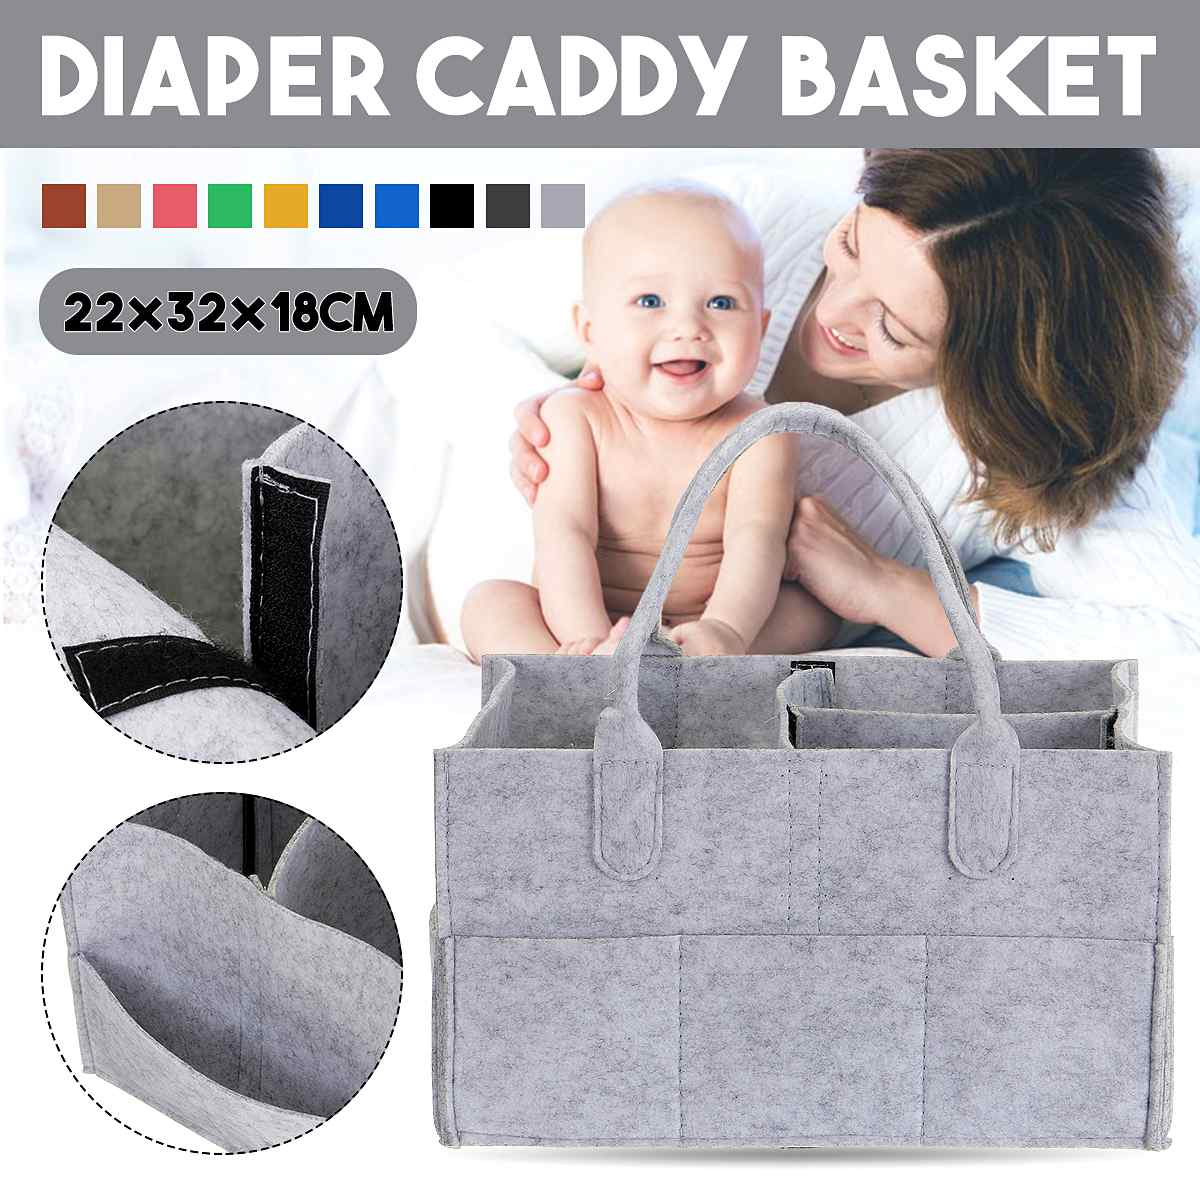 Baby Diaper Caddy Organizer Portable Felt Holder Bags For Changing Table And Car Nursery Essentials Storage Bins Carrier Bag